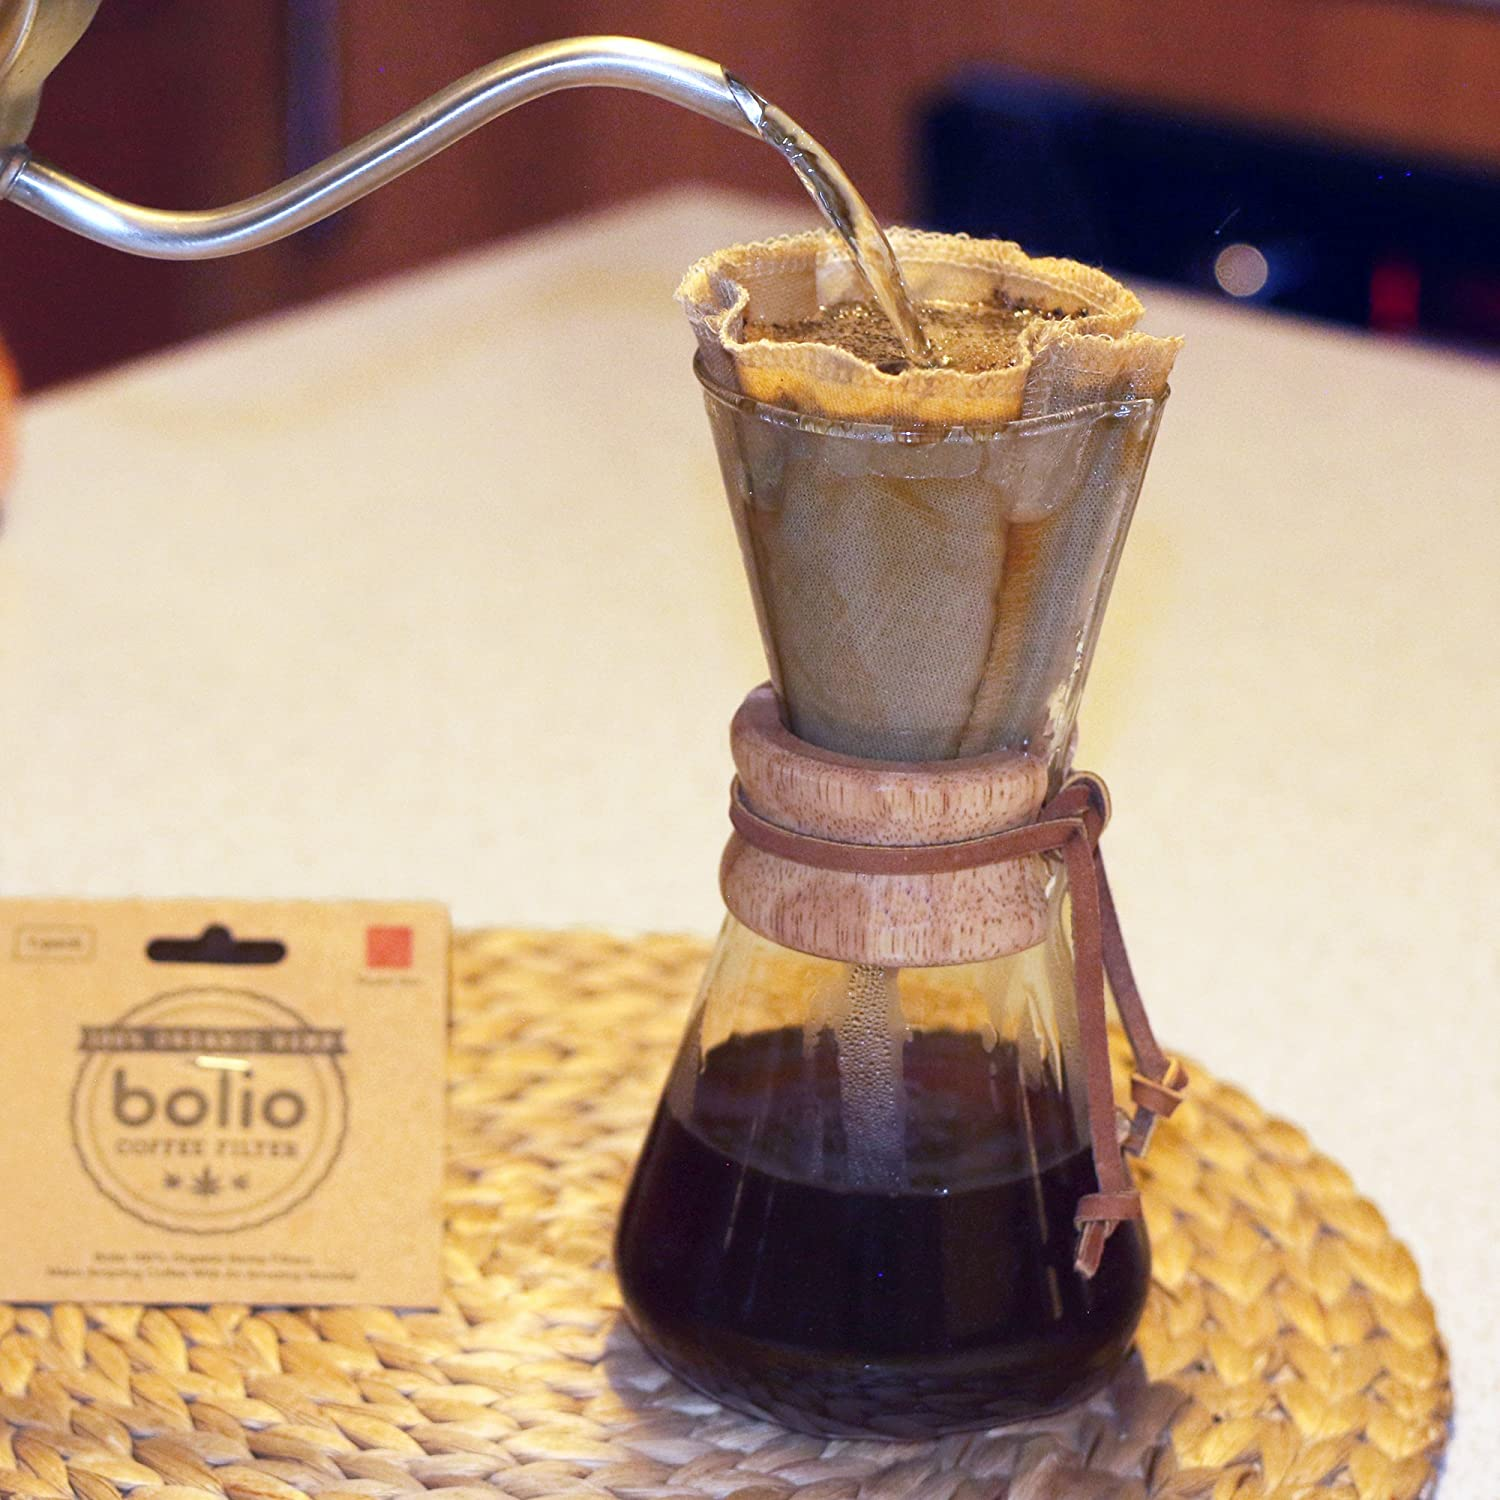 Bolio Designs 1, Chemex Organic Hemp Square Coffee Filter Reusable and Great for Making Smooth Natural Tasting Pour Over Coffee Eco-Friendly Bacteria Resistant Material Suit with Bolio Chemex Coffee Gator Carafe